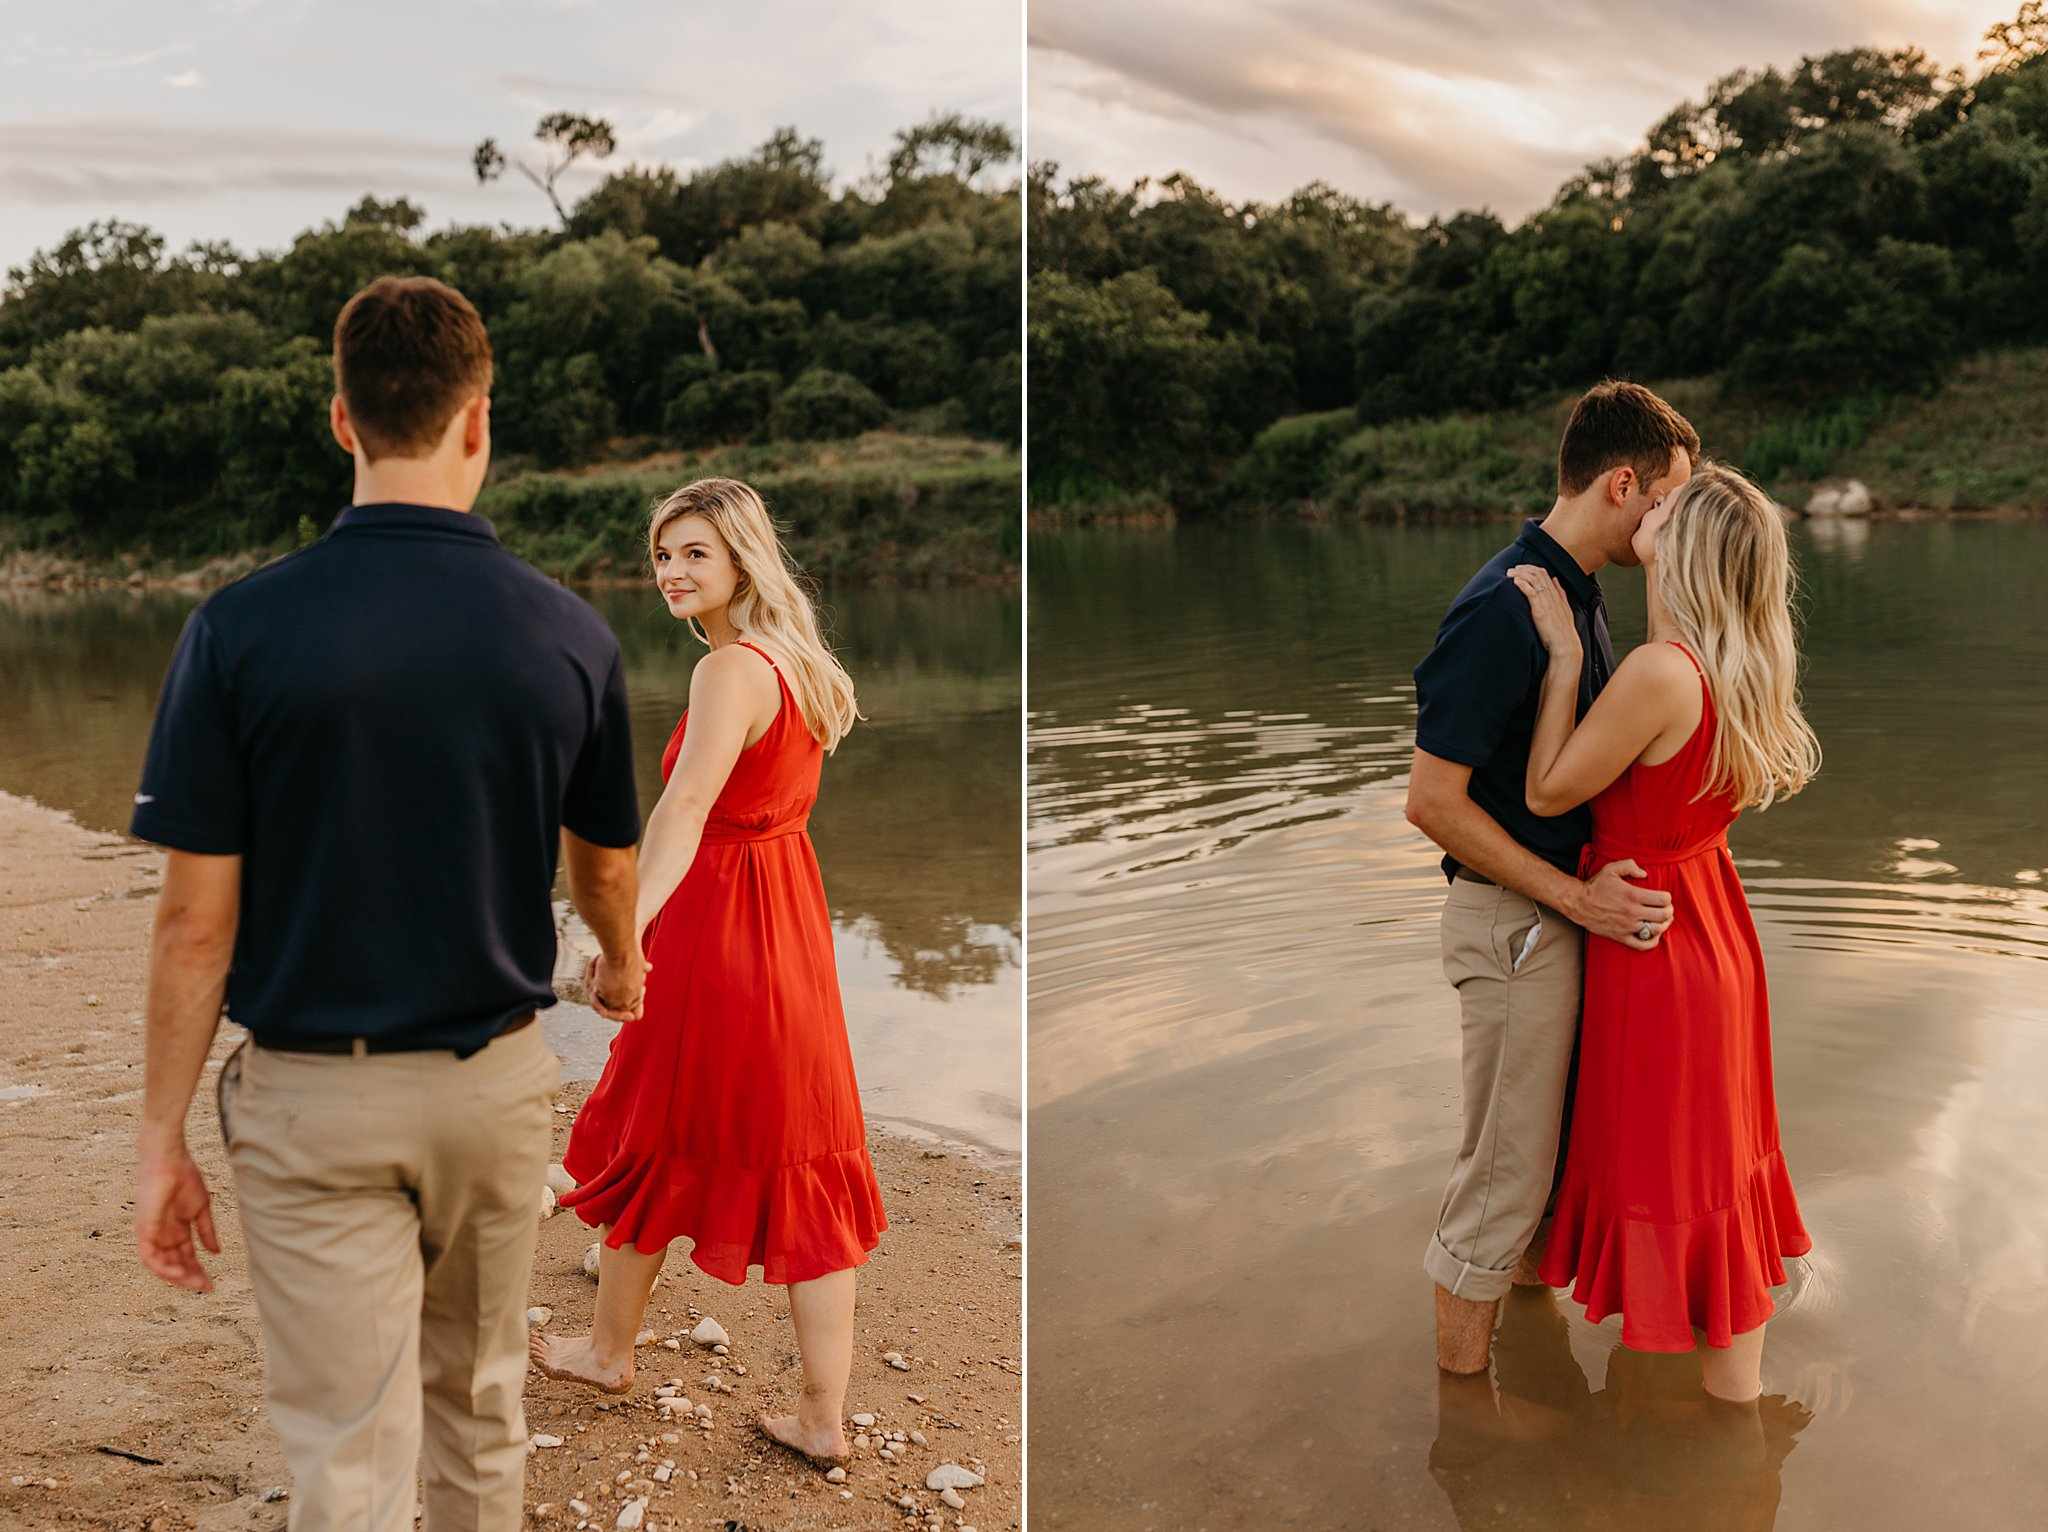 Wilderlove Co_Wedding Photographer_Dripping Springs Photography_Adventure Engagemenet_Rock Climbing Engagement_Hill Country Photographer_North Texas Photographer_0029.jpg